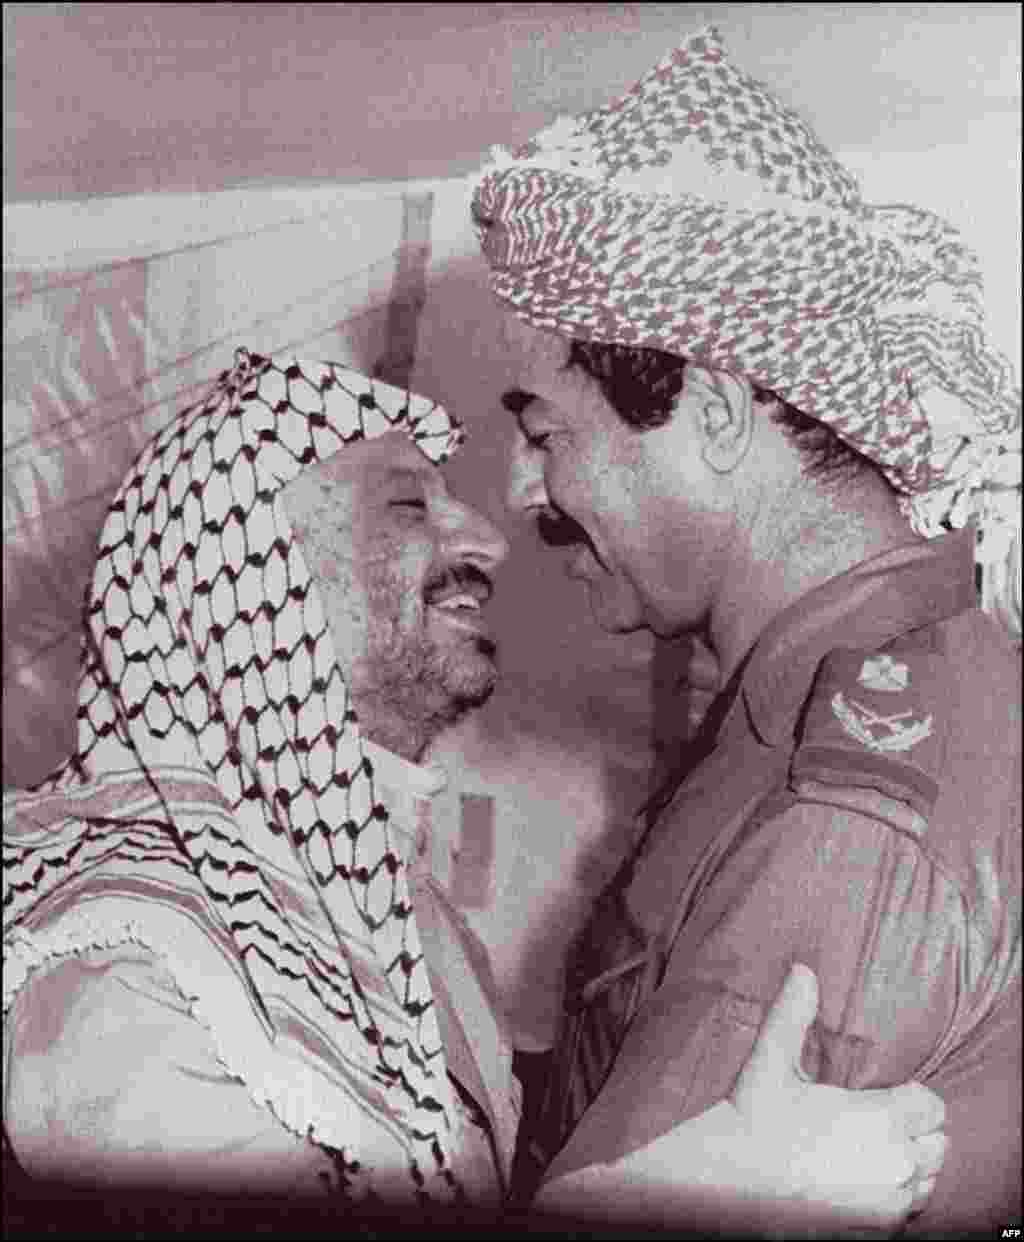 With Palestinian leader Yasser Arafat in 1980. Although Saddam Hussein was popular with some in the Arab world through the 1970s, Arafat would be one of the few global figures to support him during the first Gulf War in 1991.